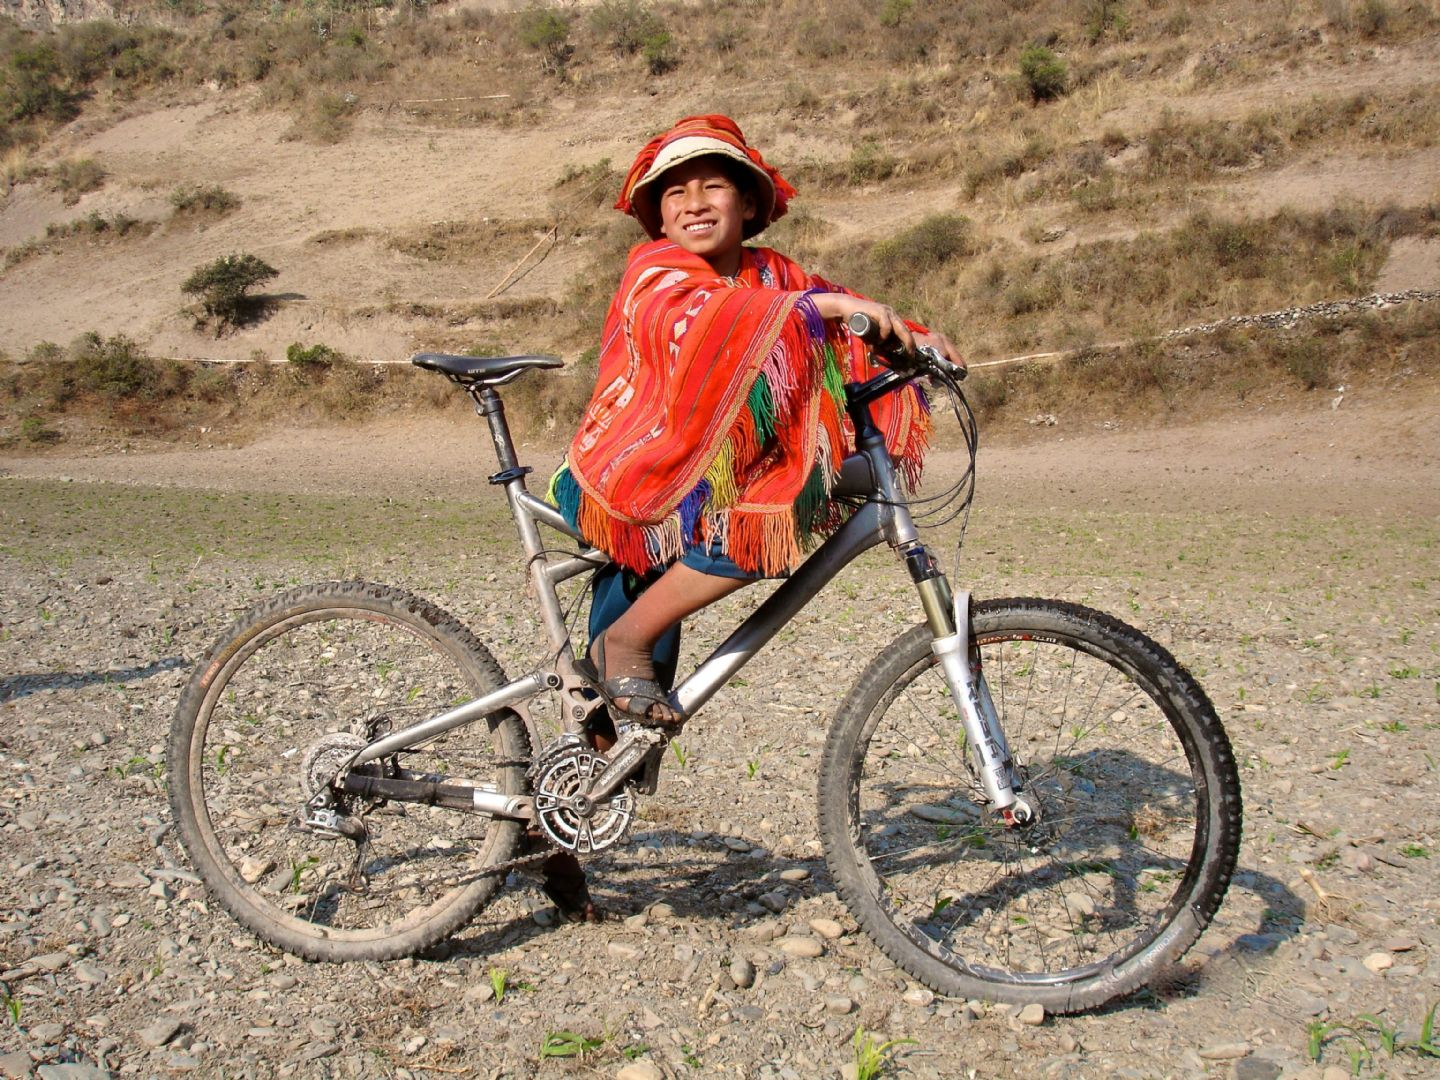 262a.jpg - Peru - Andean Journey - Guided Mountain Bike Holiday - Mountain Biking